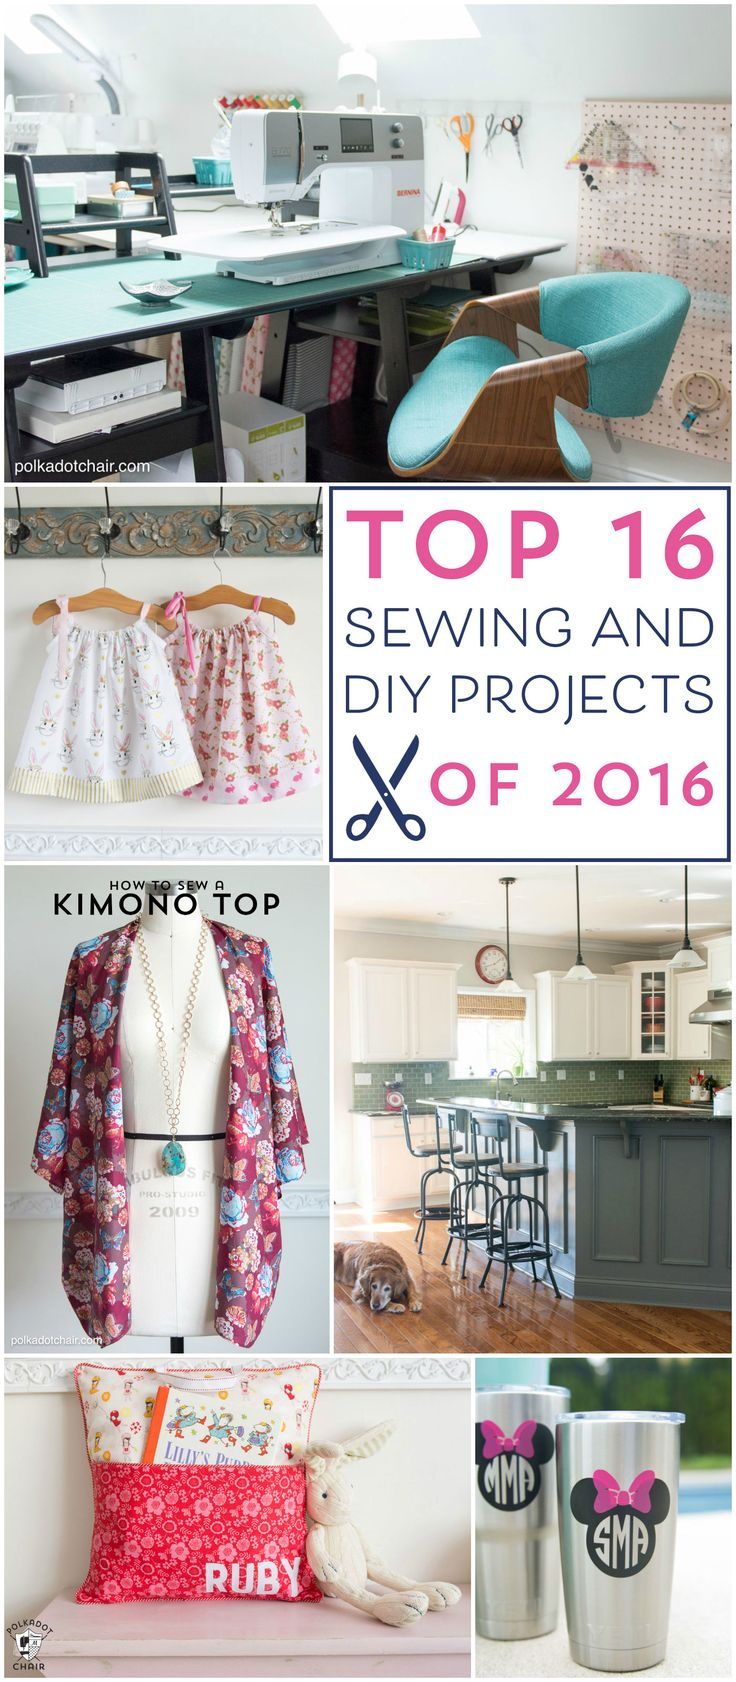 Free Diy Projects 20093 Best All Time Favorite Crafts Diy Images On Pinterest